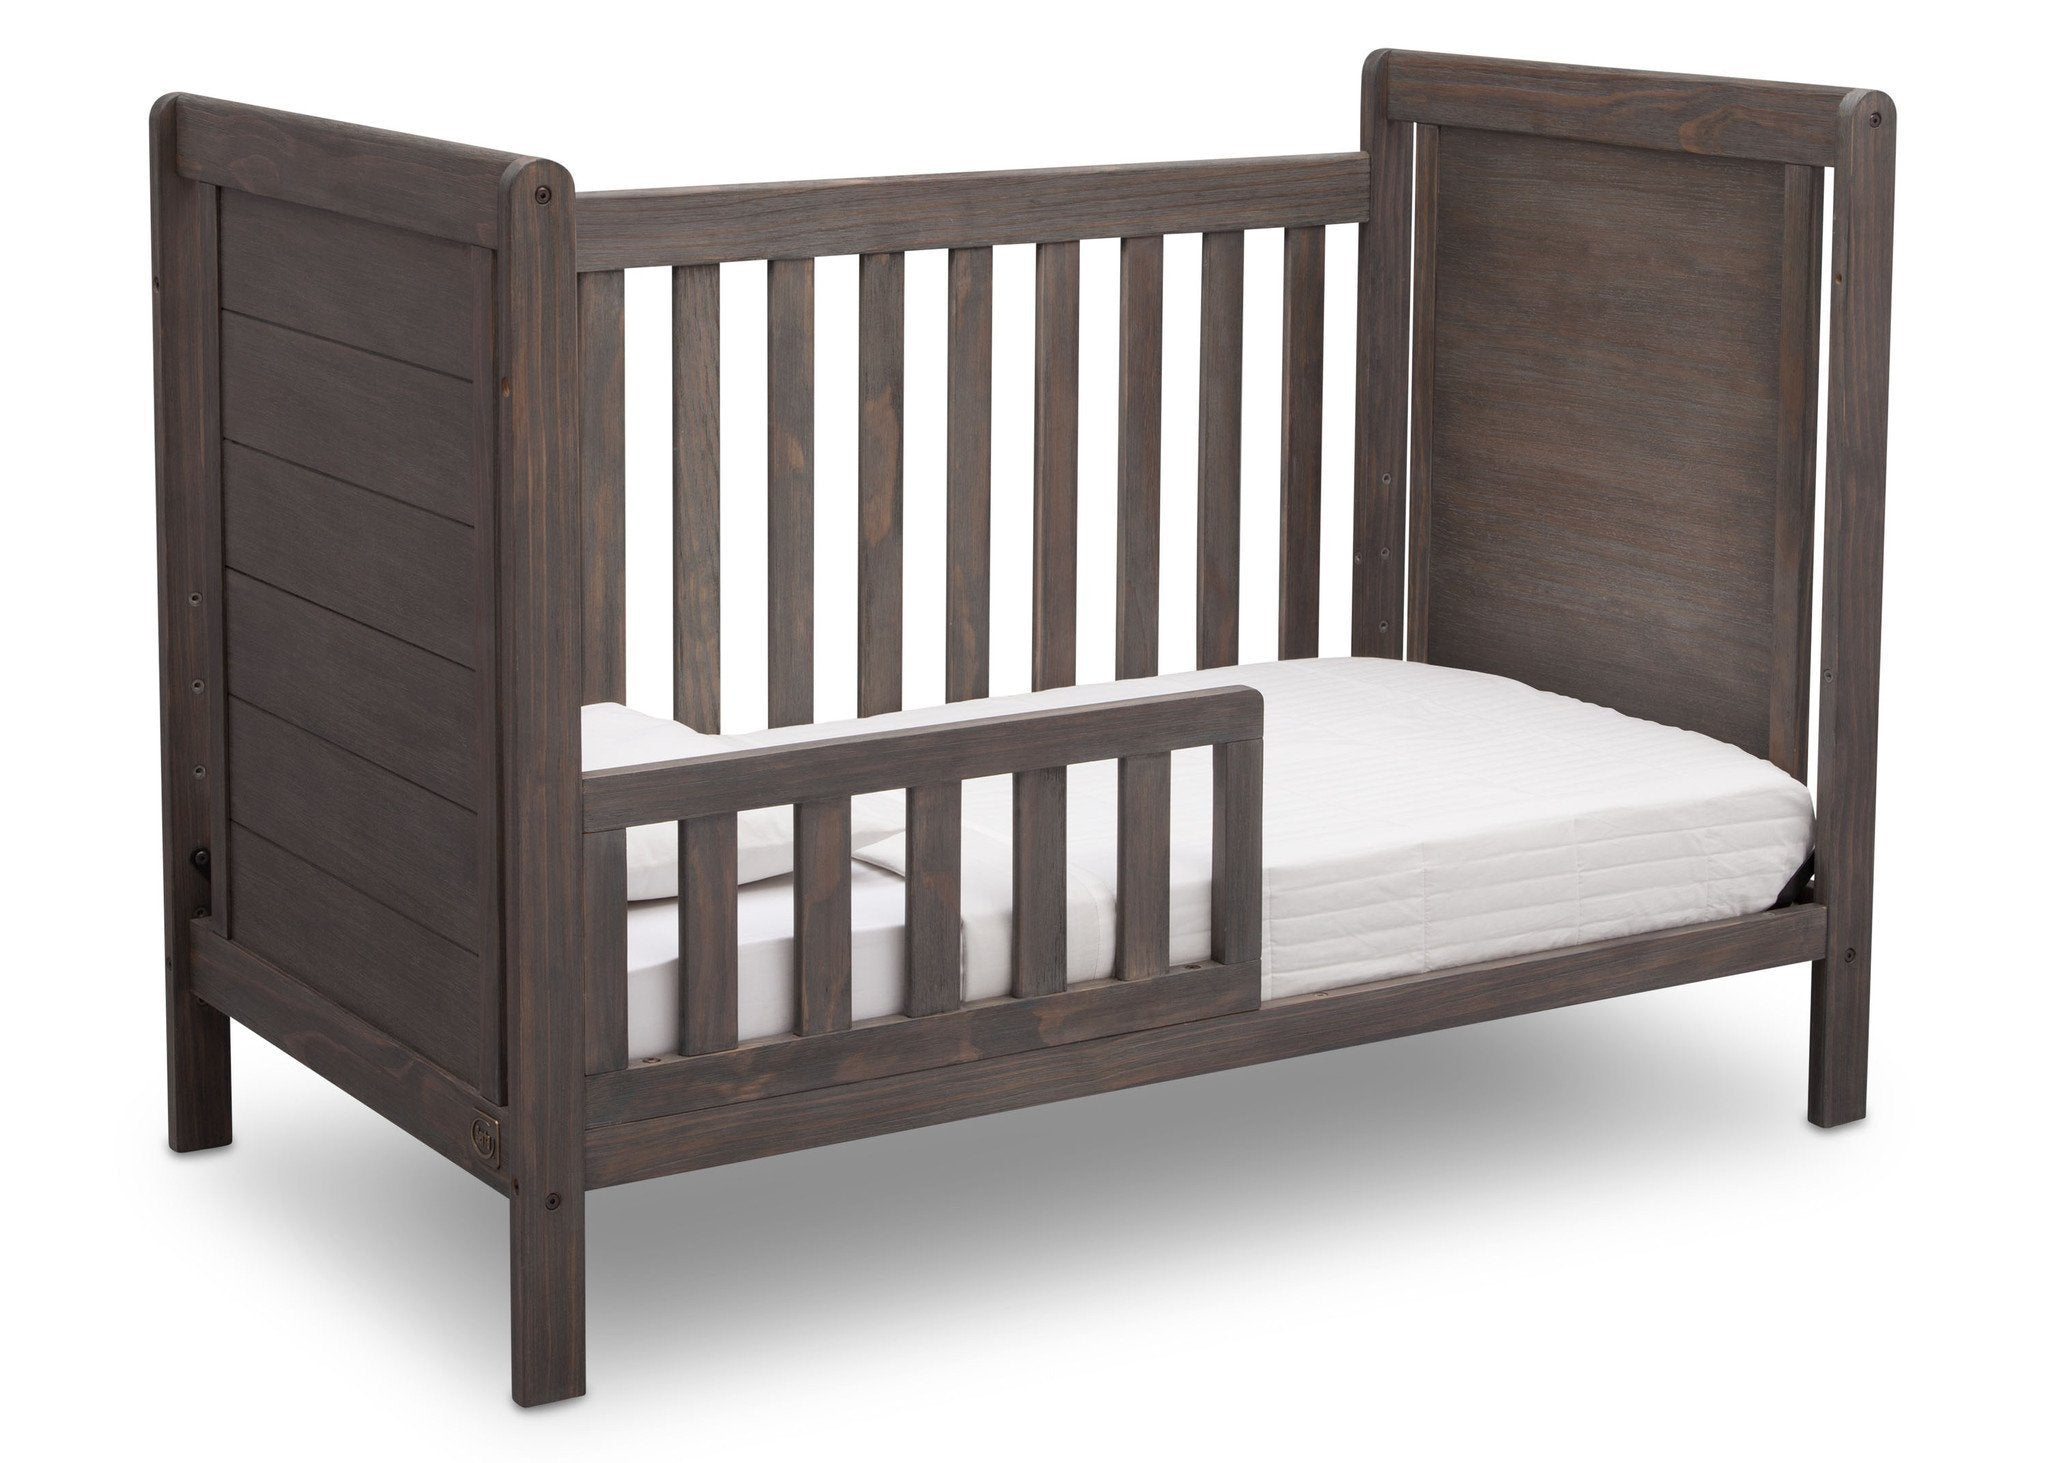 Delta Children Rustic Grey (084) Cali 4-in-1 Crib, angled conversion to toddler bed, a4a